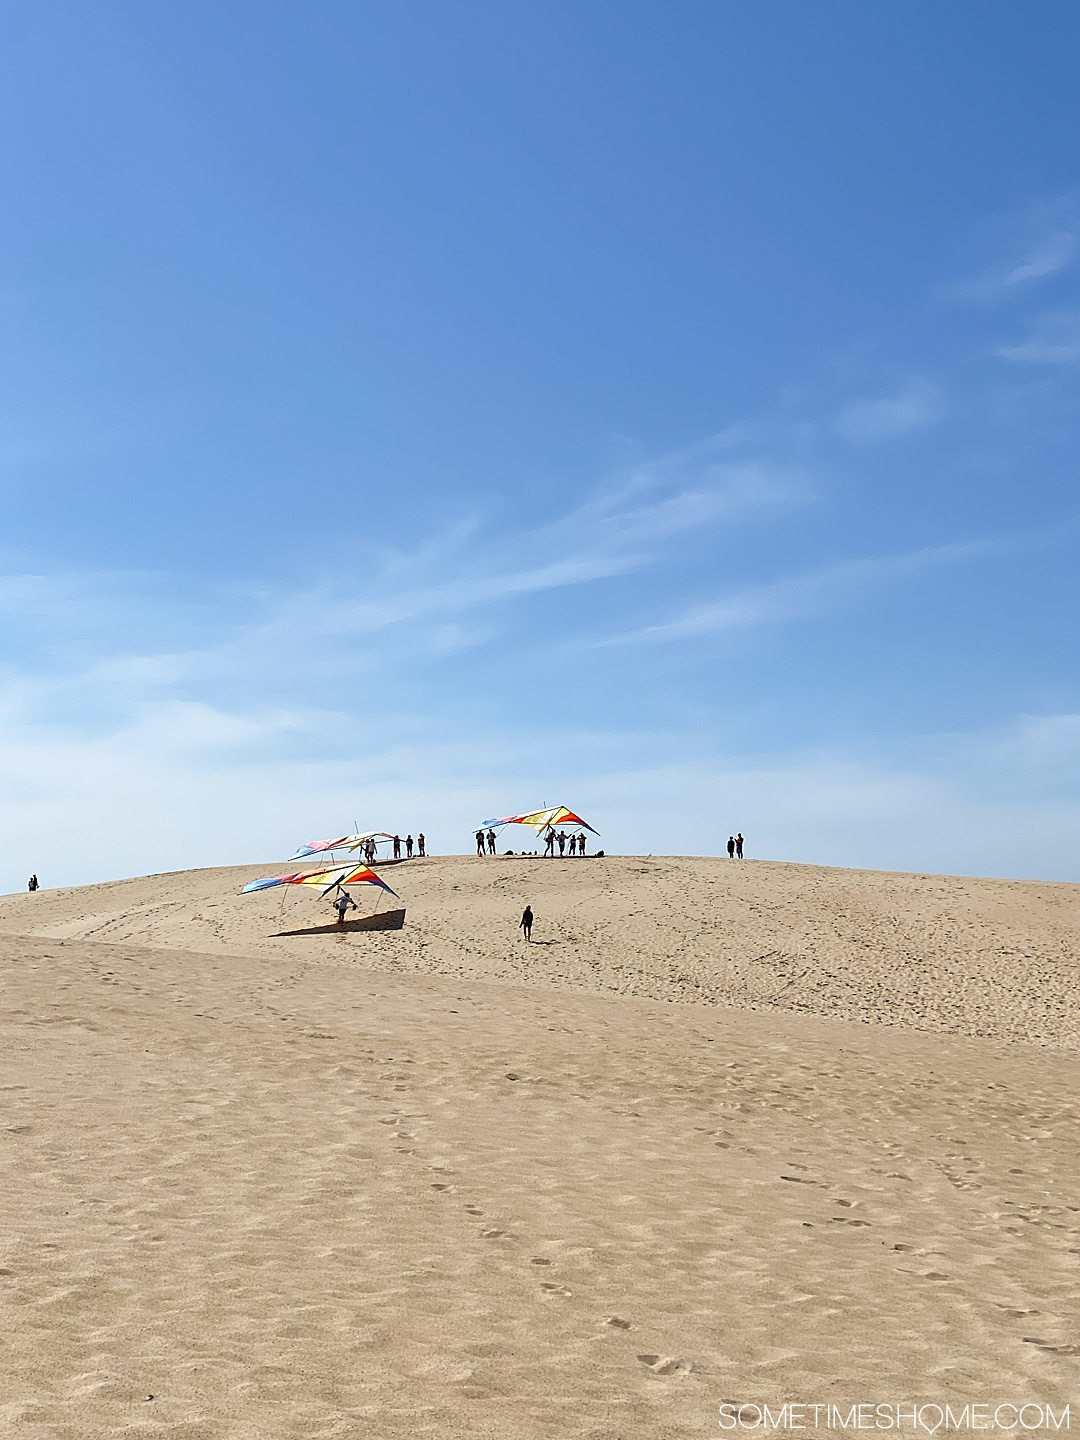 Hang gliders and people in the distance with tan colored sand dunes and blue sky at Jockey's Ridge State Park in Nags Head, of the Outer Banks in NC.